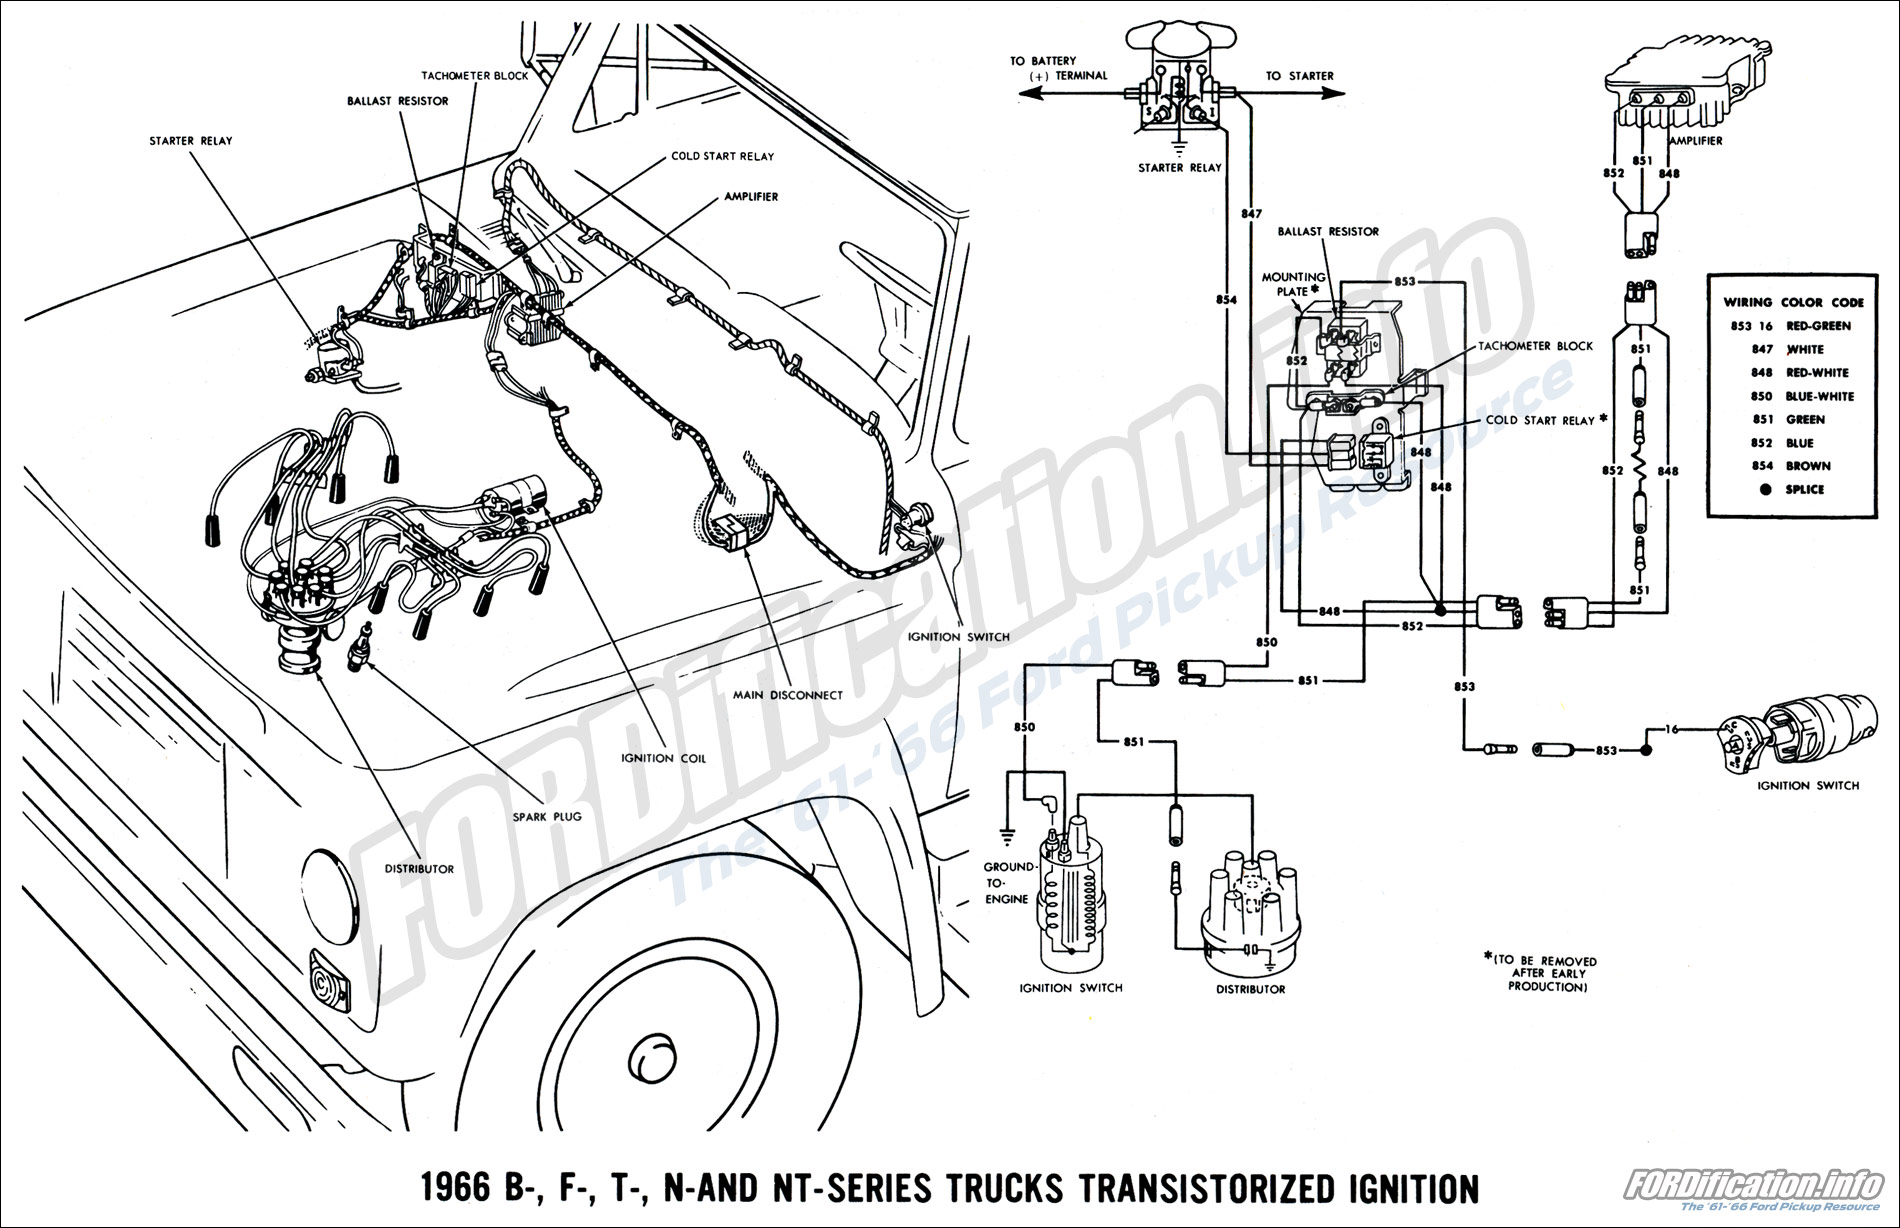 1974 Ford F100 Wiring Harness Diagram. Ford. Wiring